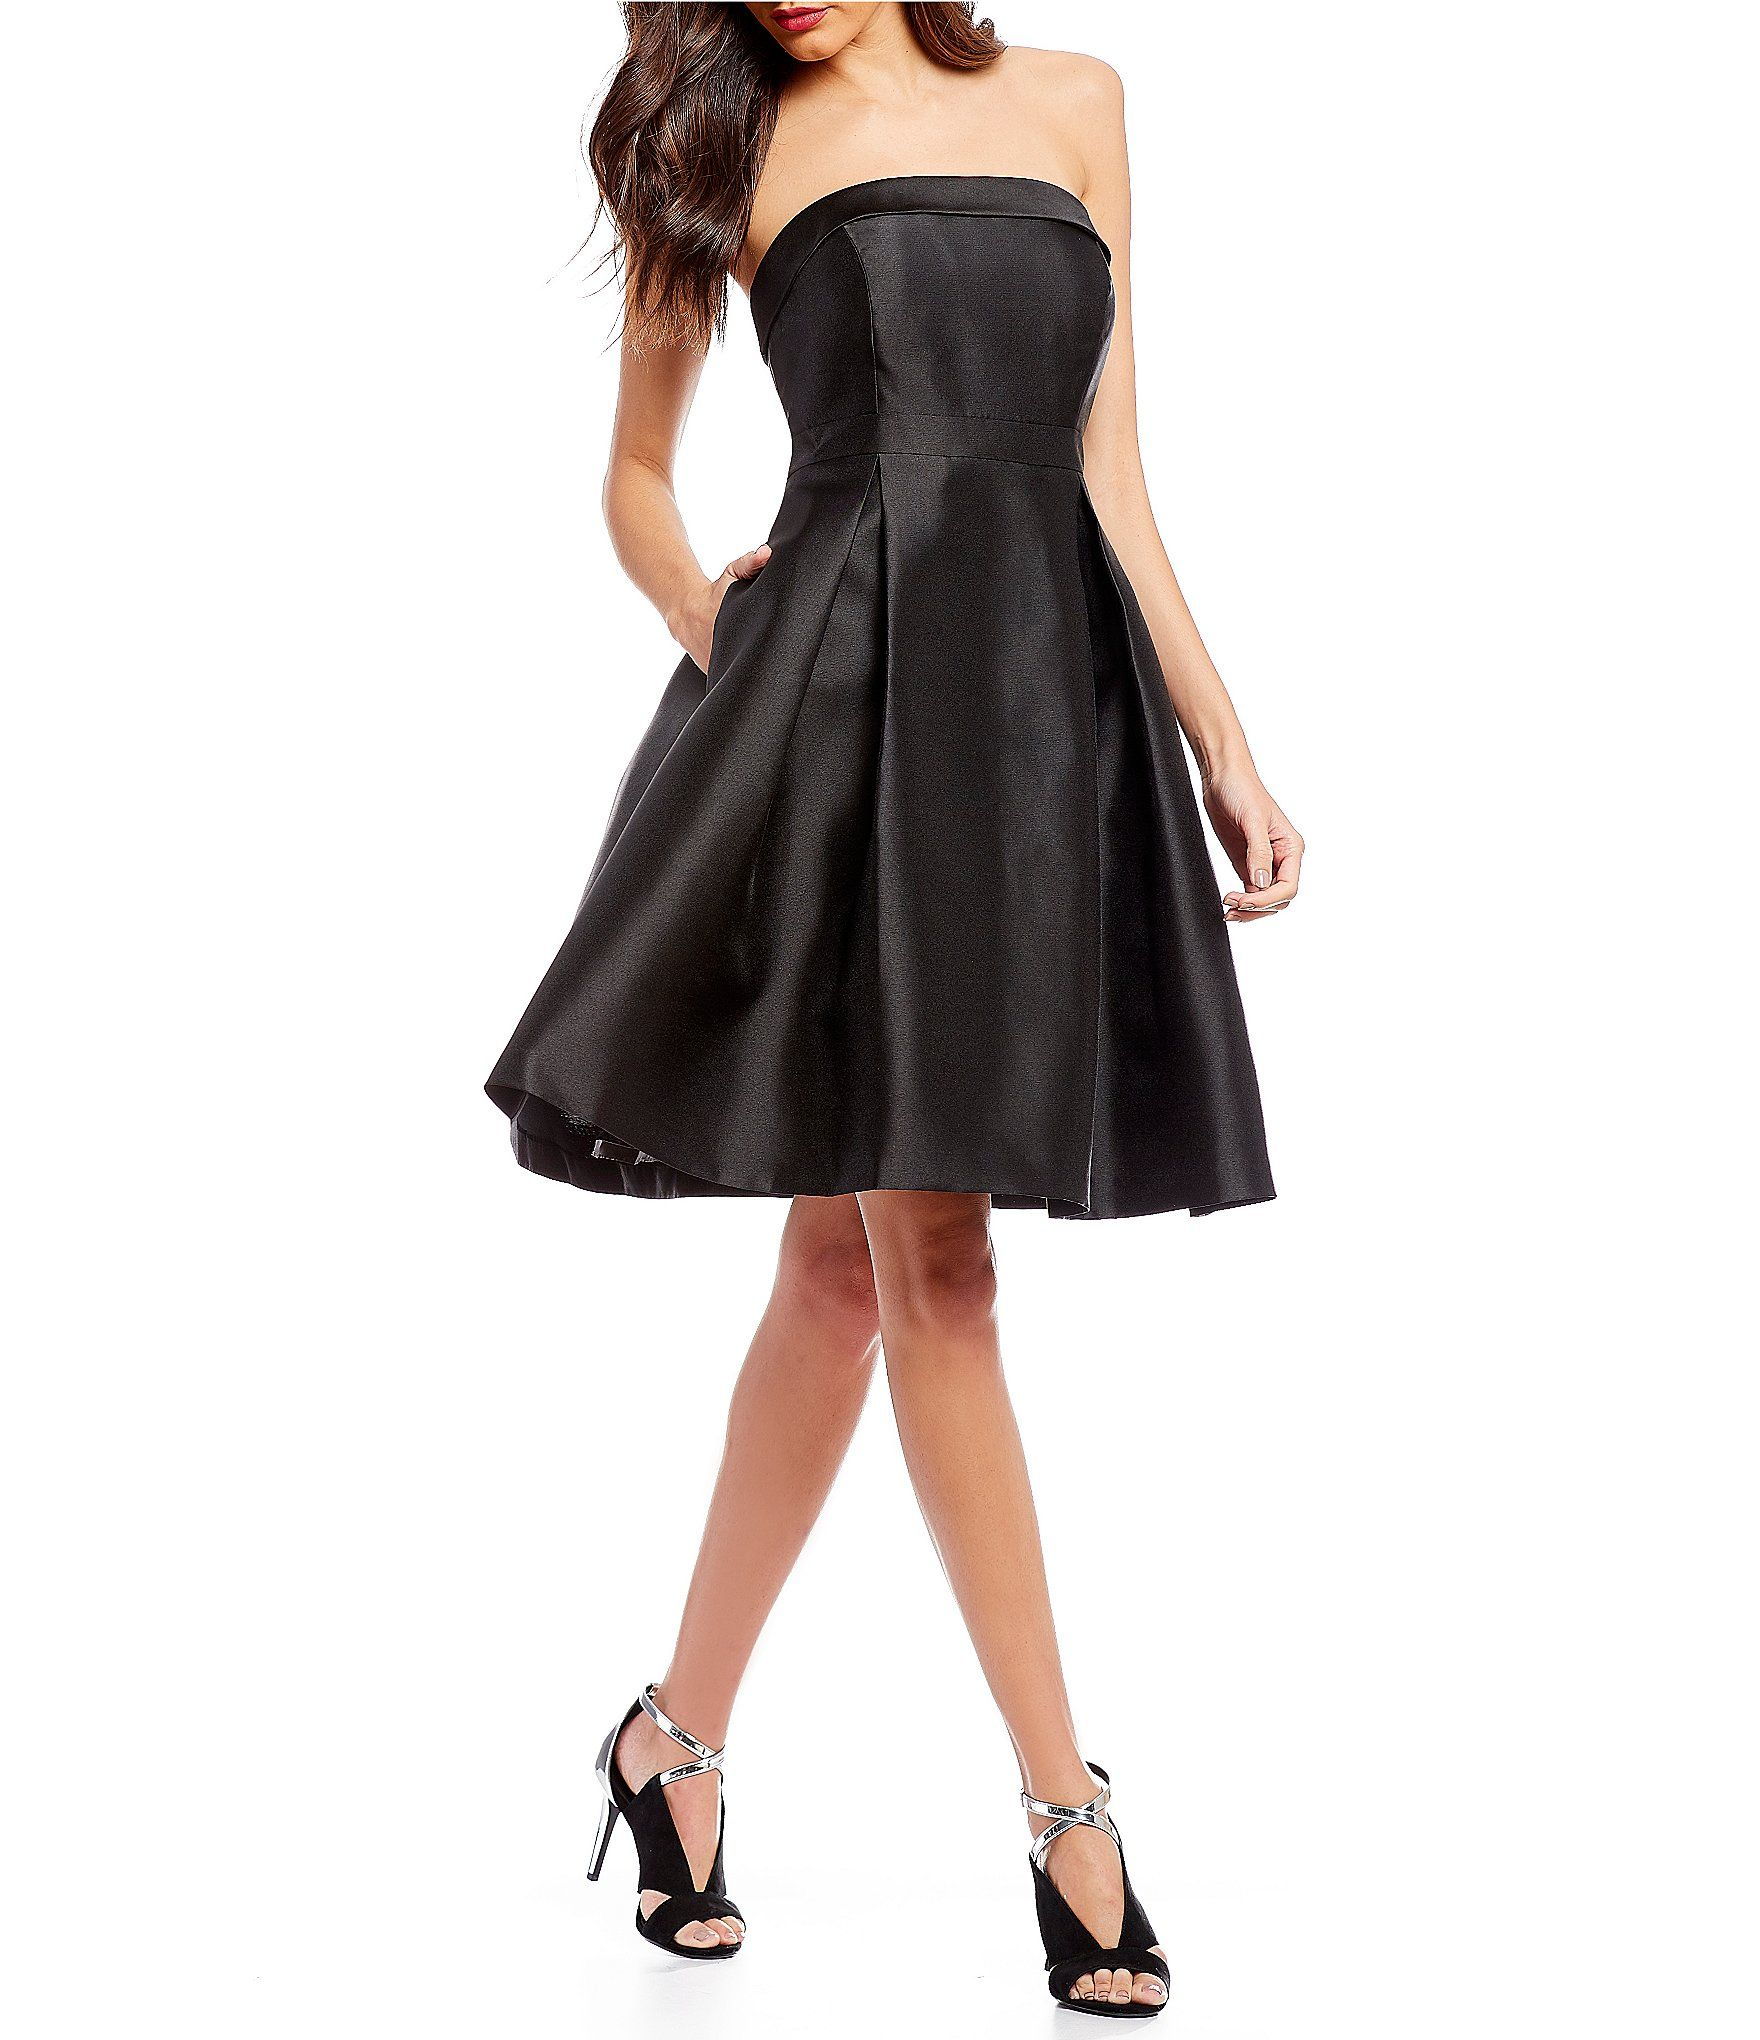 Calvin Klein Strapless Fit and Flare Party Dress   Dillards and ...